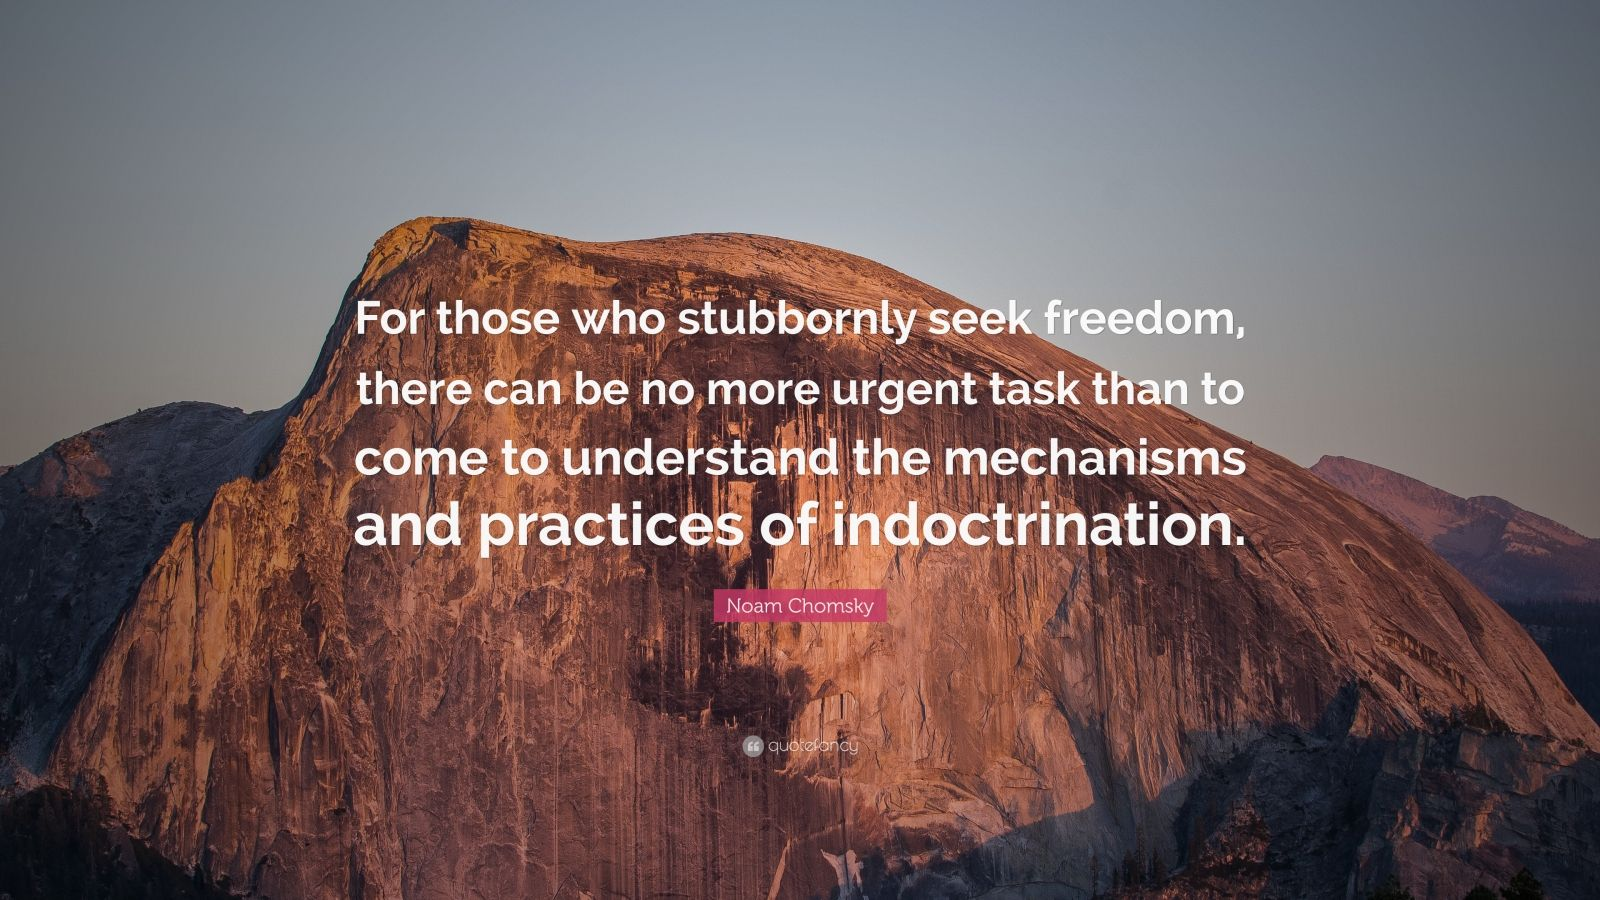 """Noam Chomsky Quote: """"For those who stubbornly seek freedom, there can be no more urgent task than to come to understand the mechanisms and practices of indoctrination."""""""